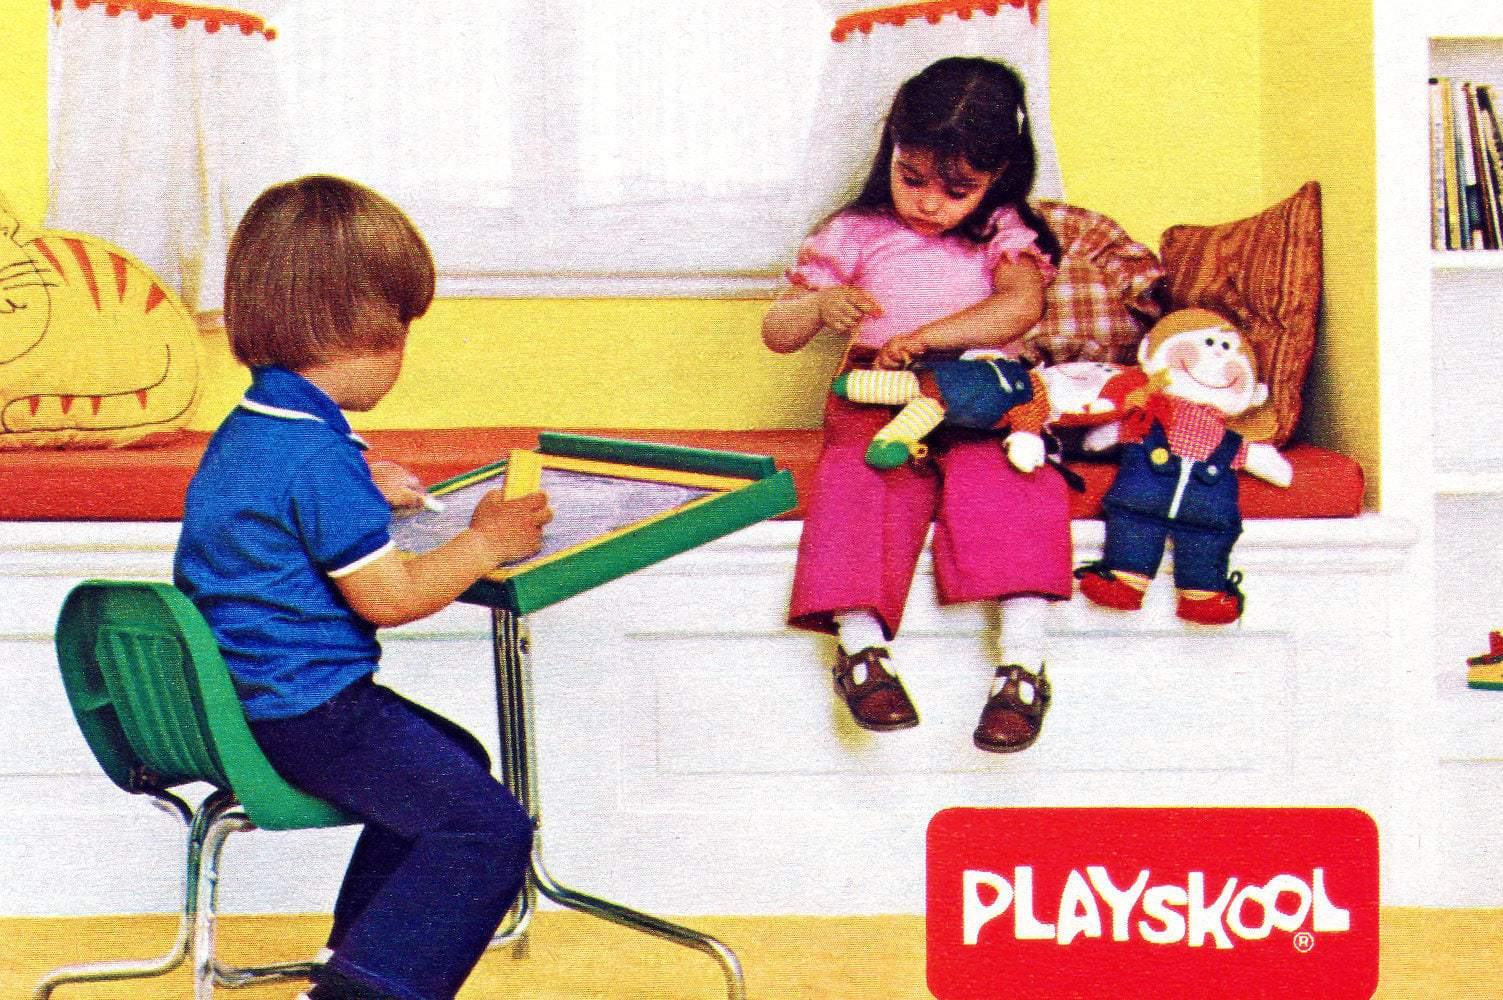 Vintage 1970s Playskool toys, dolls, ride-ons and other fun for kids